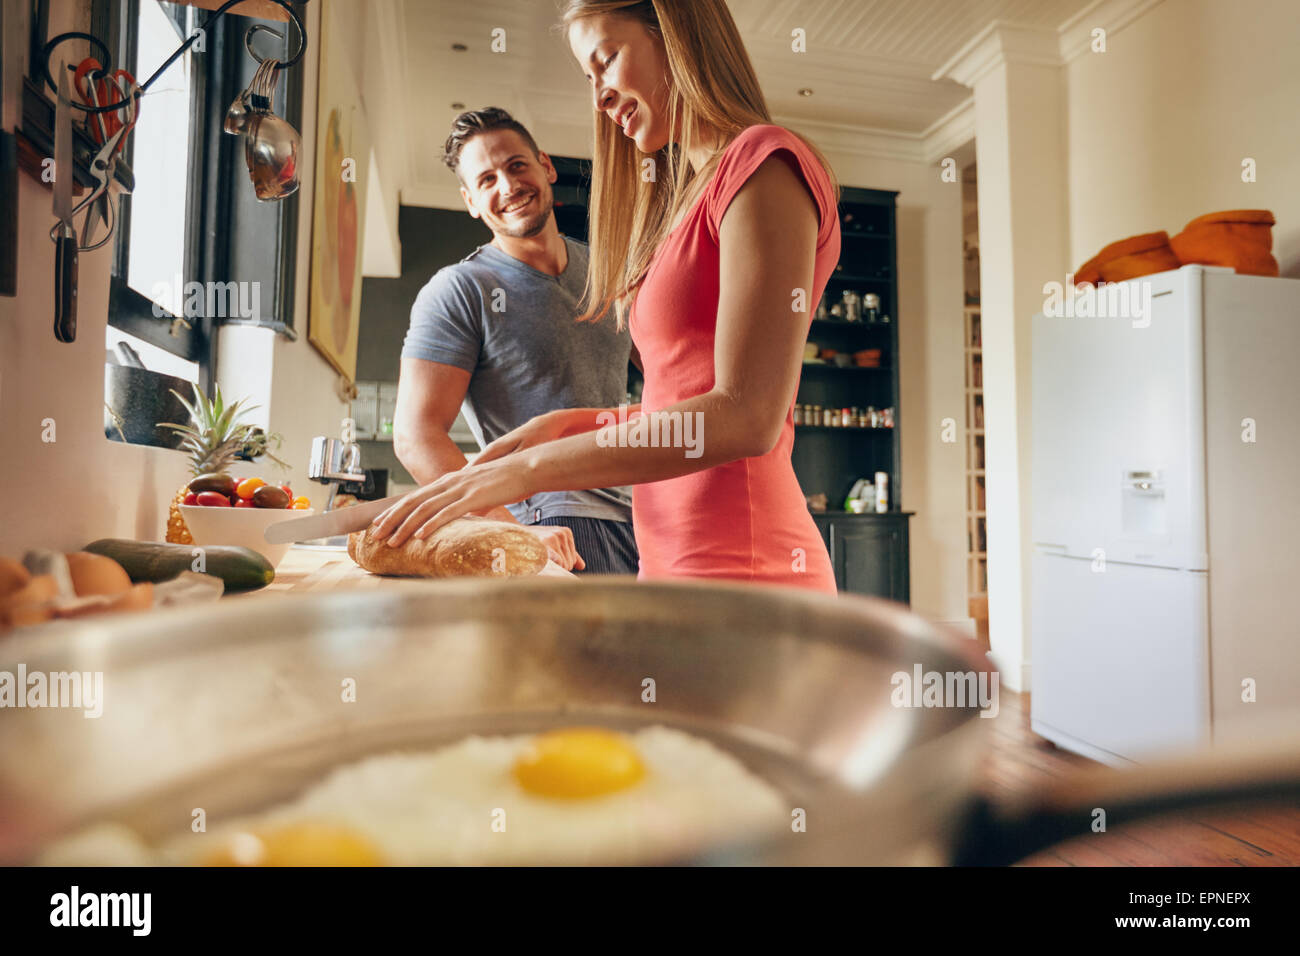 Indoor shot of happy young couple standing at the kitchen counter in morning. Woman cutting bread for breakfast. - Stock Image